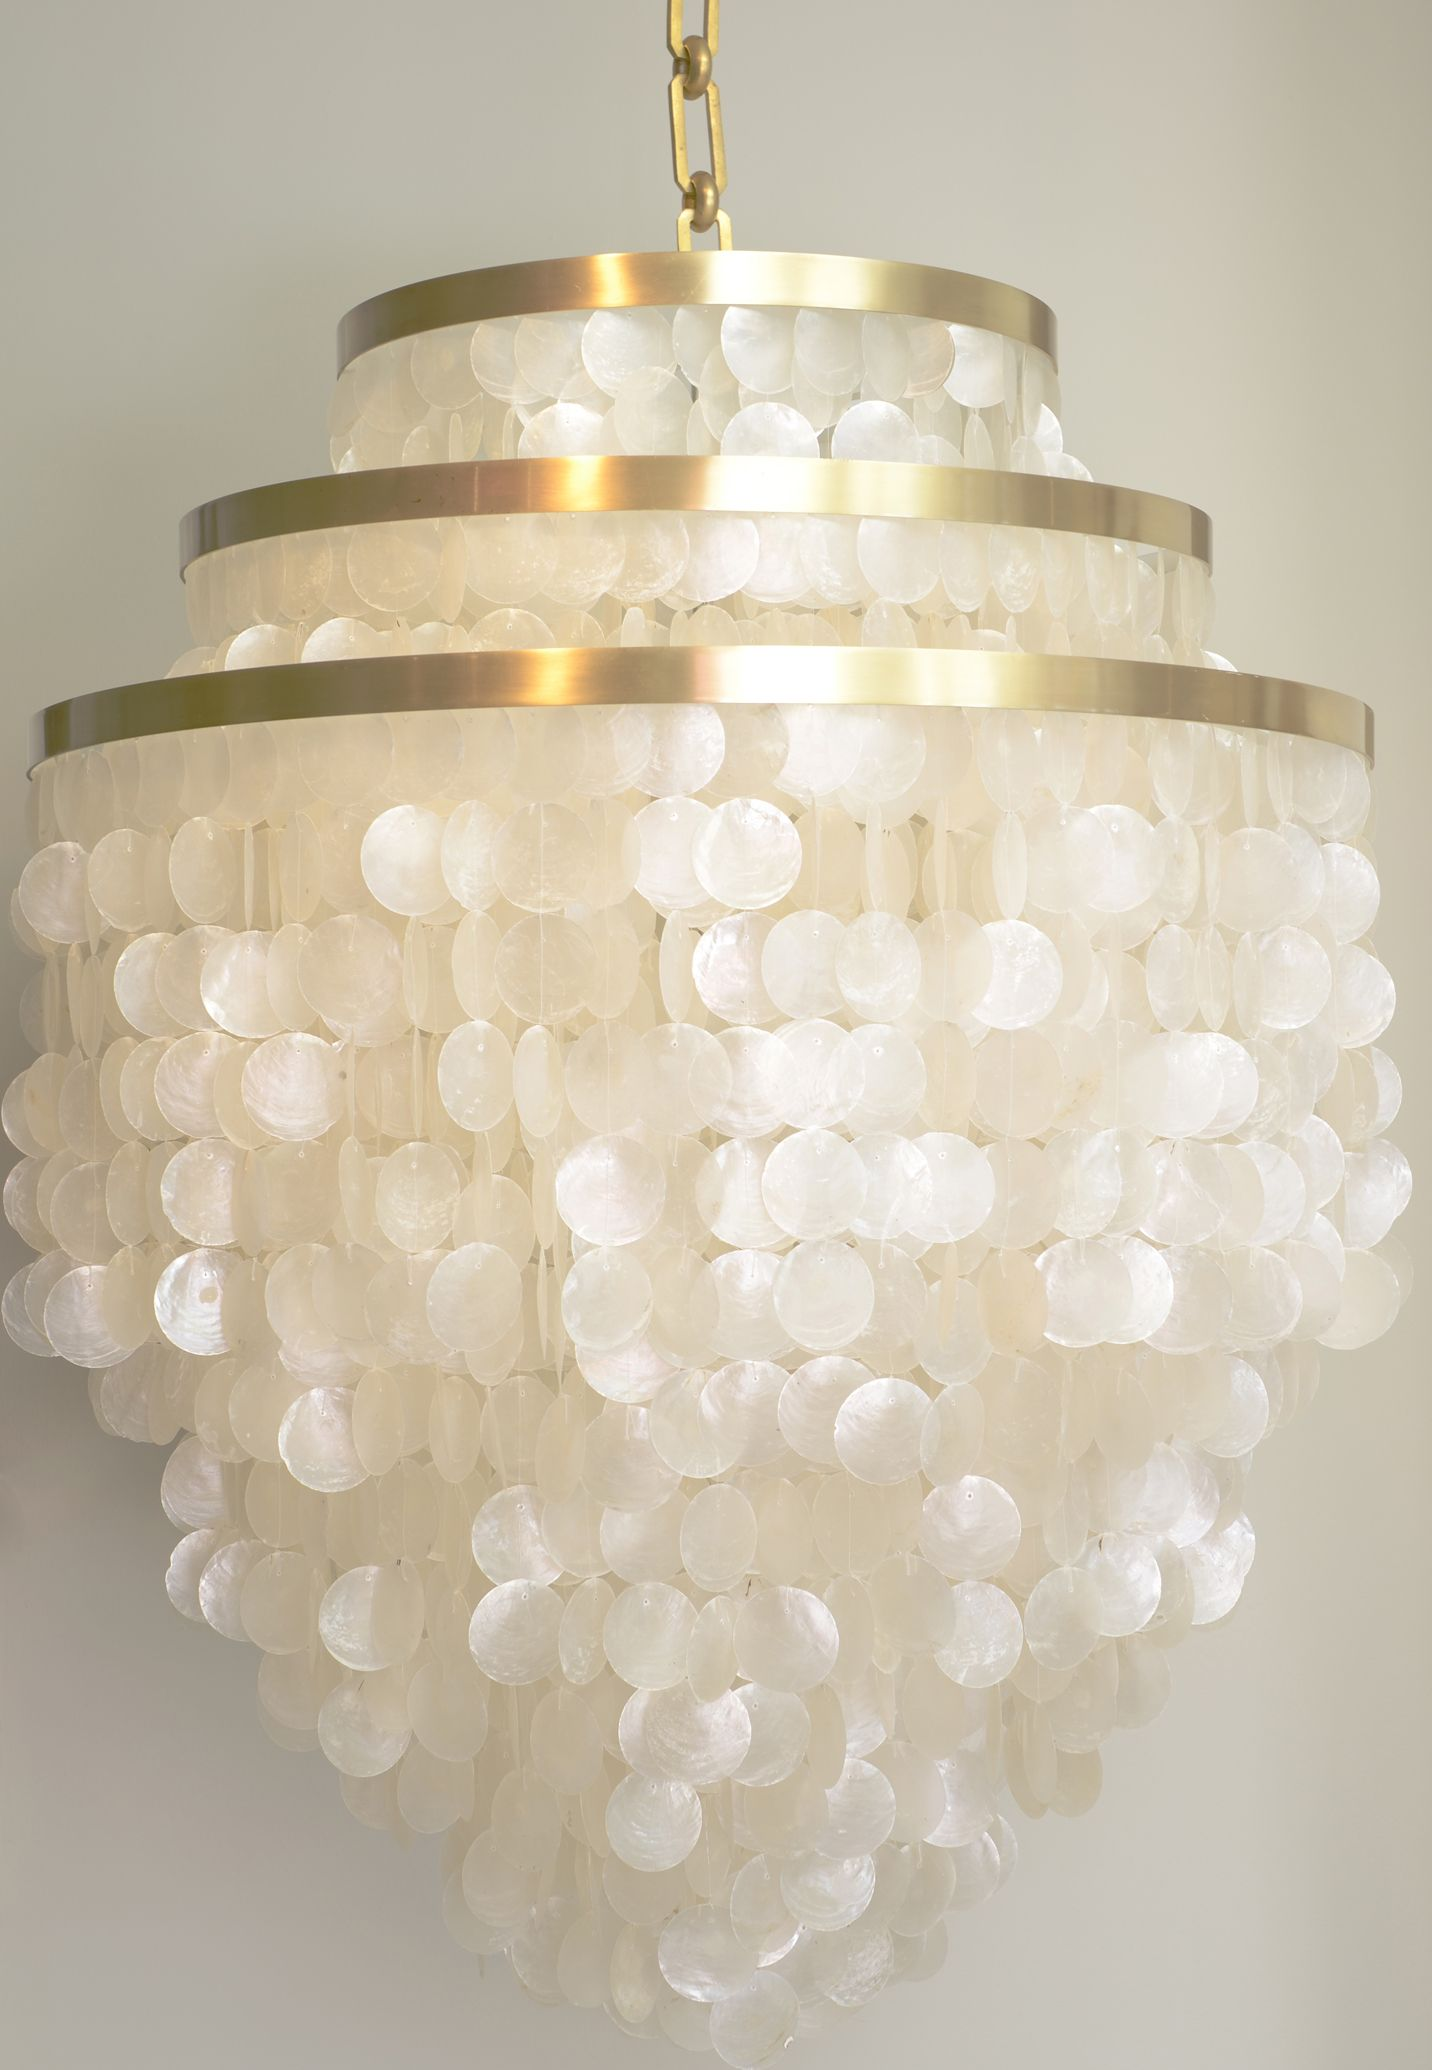 Quite simply the most luxe lush and versatile capiz chandeliers quite simply the most luxe lush and versatile capiz chandeliers available this classic design mozeypictures Gallery